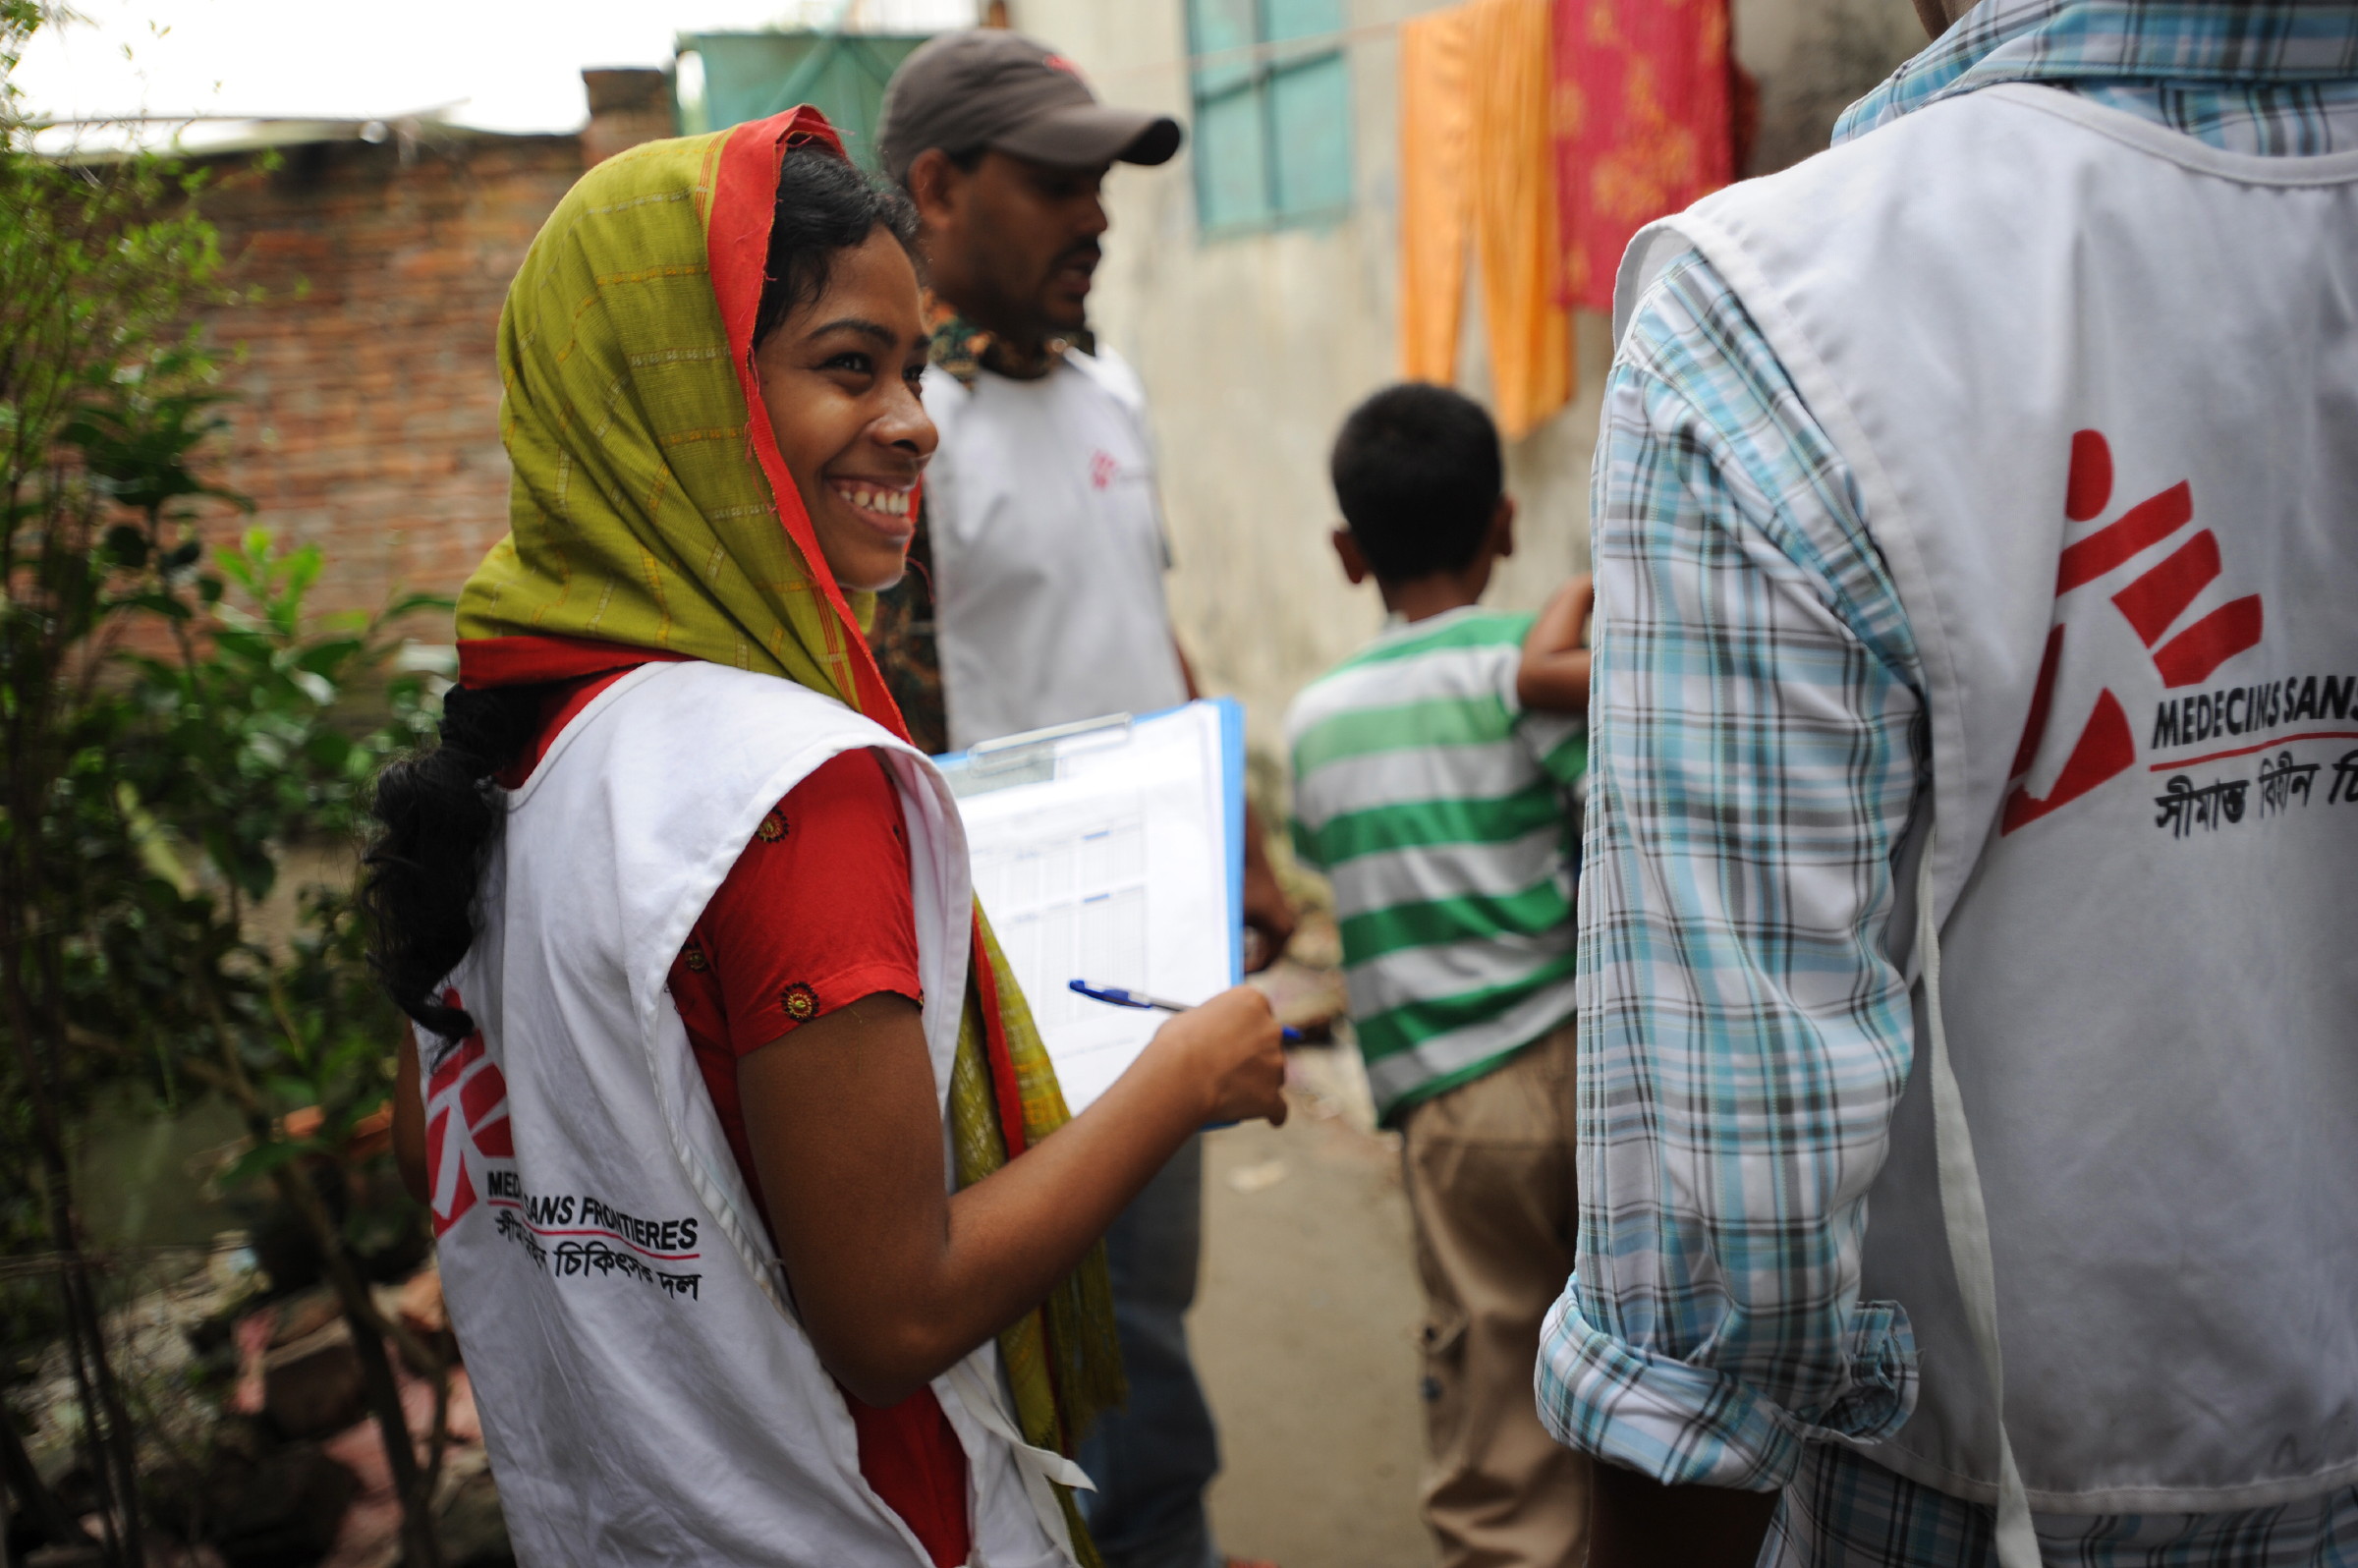 A woman wearing an MSF shirt and a head scarf holds a clip board and smiles at another MSF worker partially out of frame.